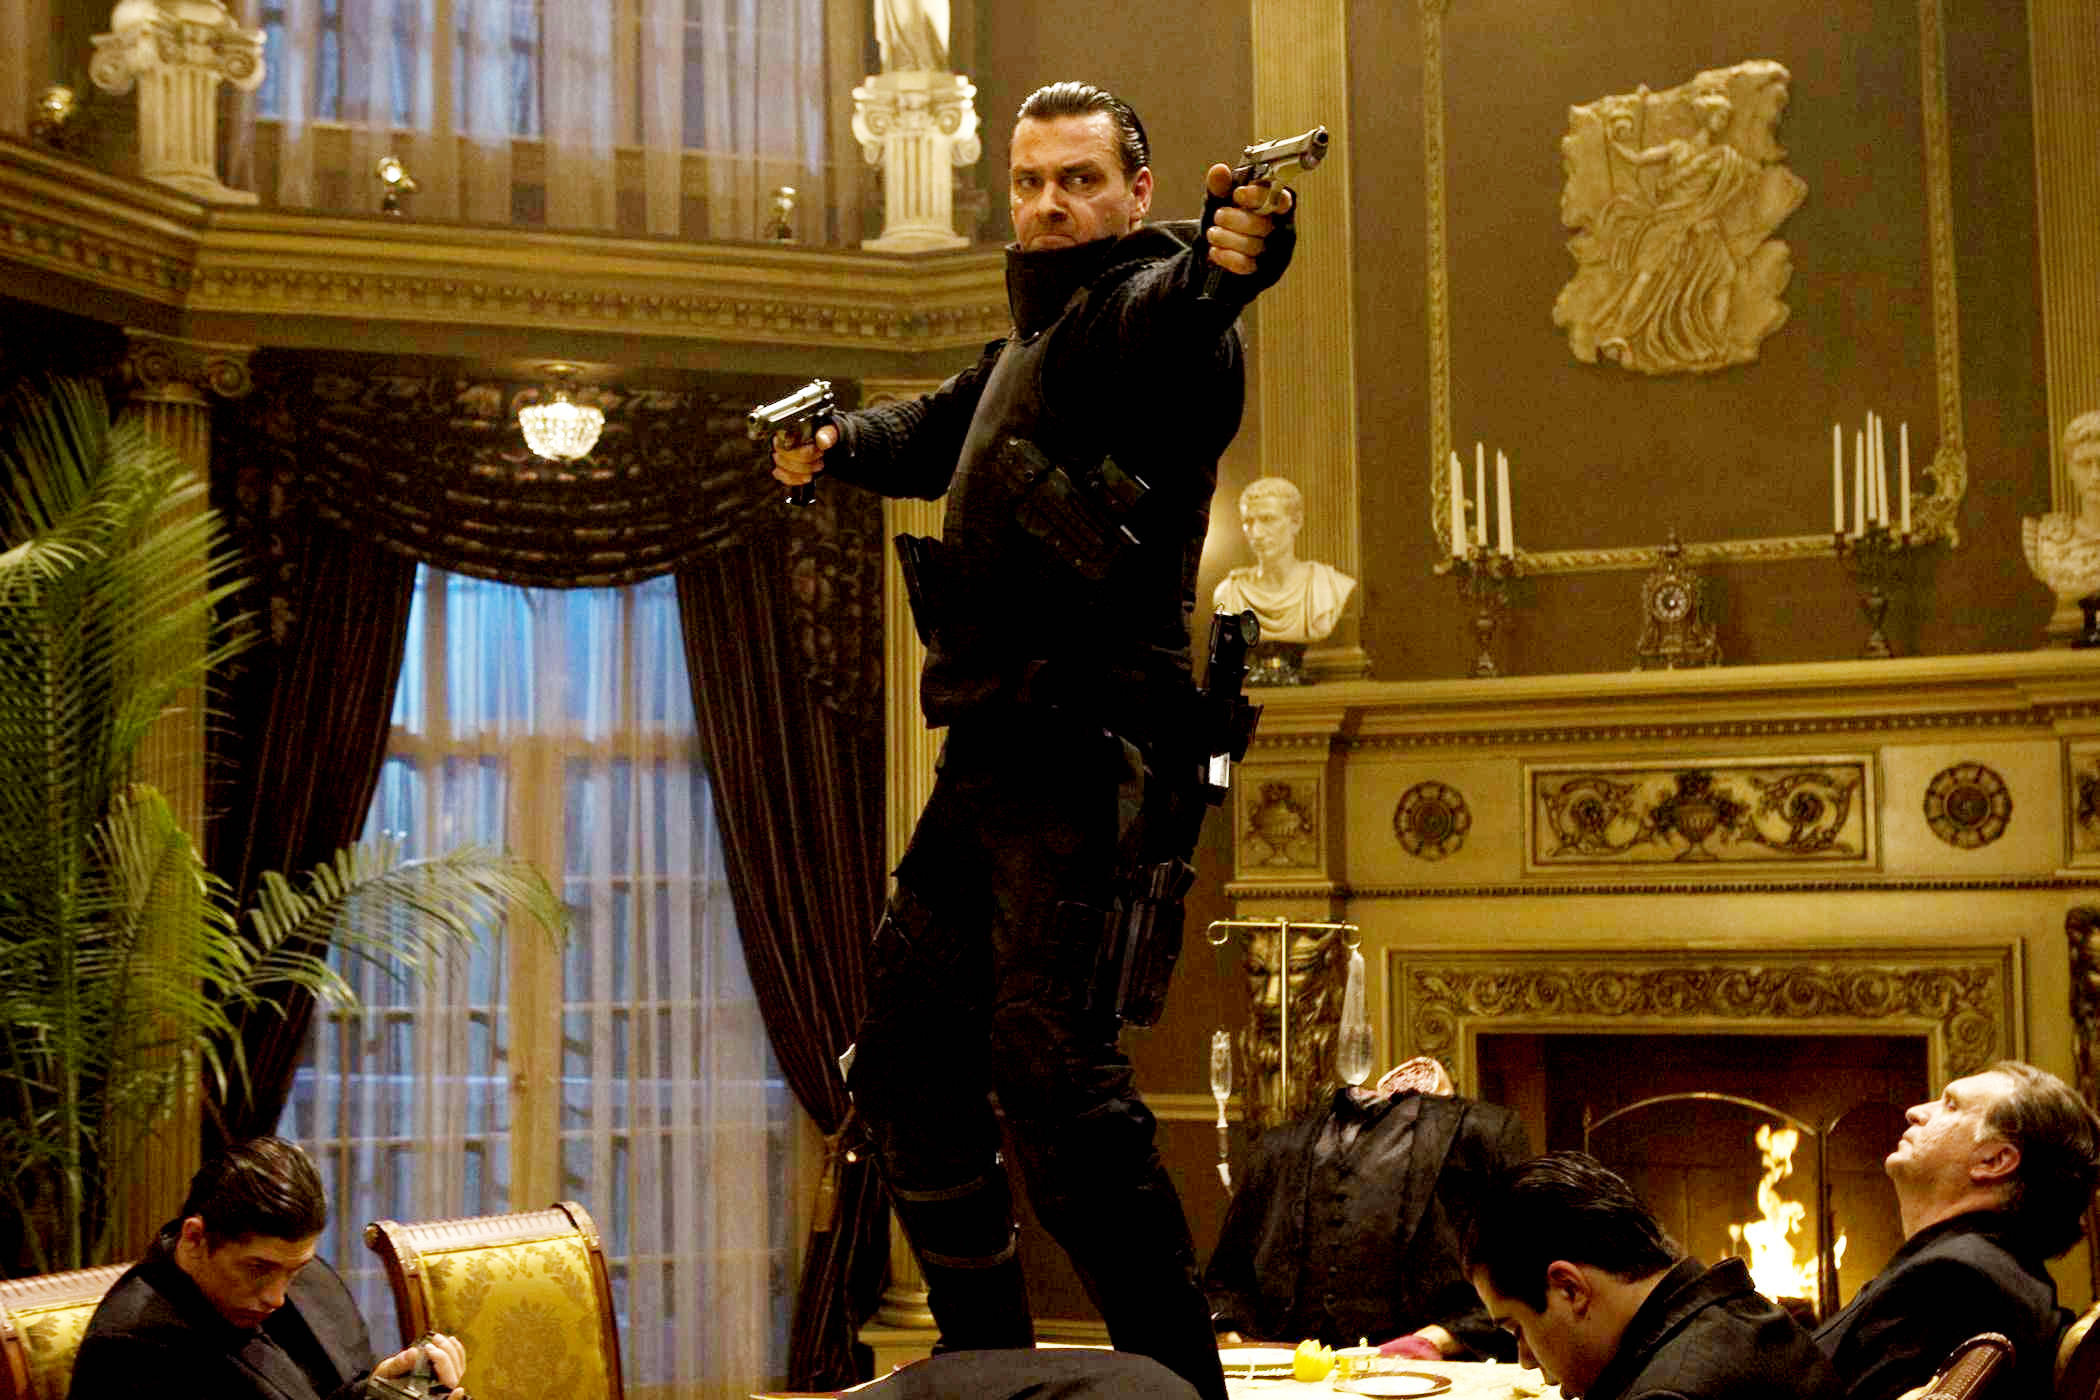 Ray Stevenson in action as Frank Castle in Punisher: War Zone (2008)